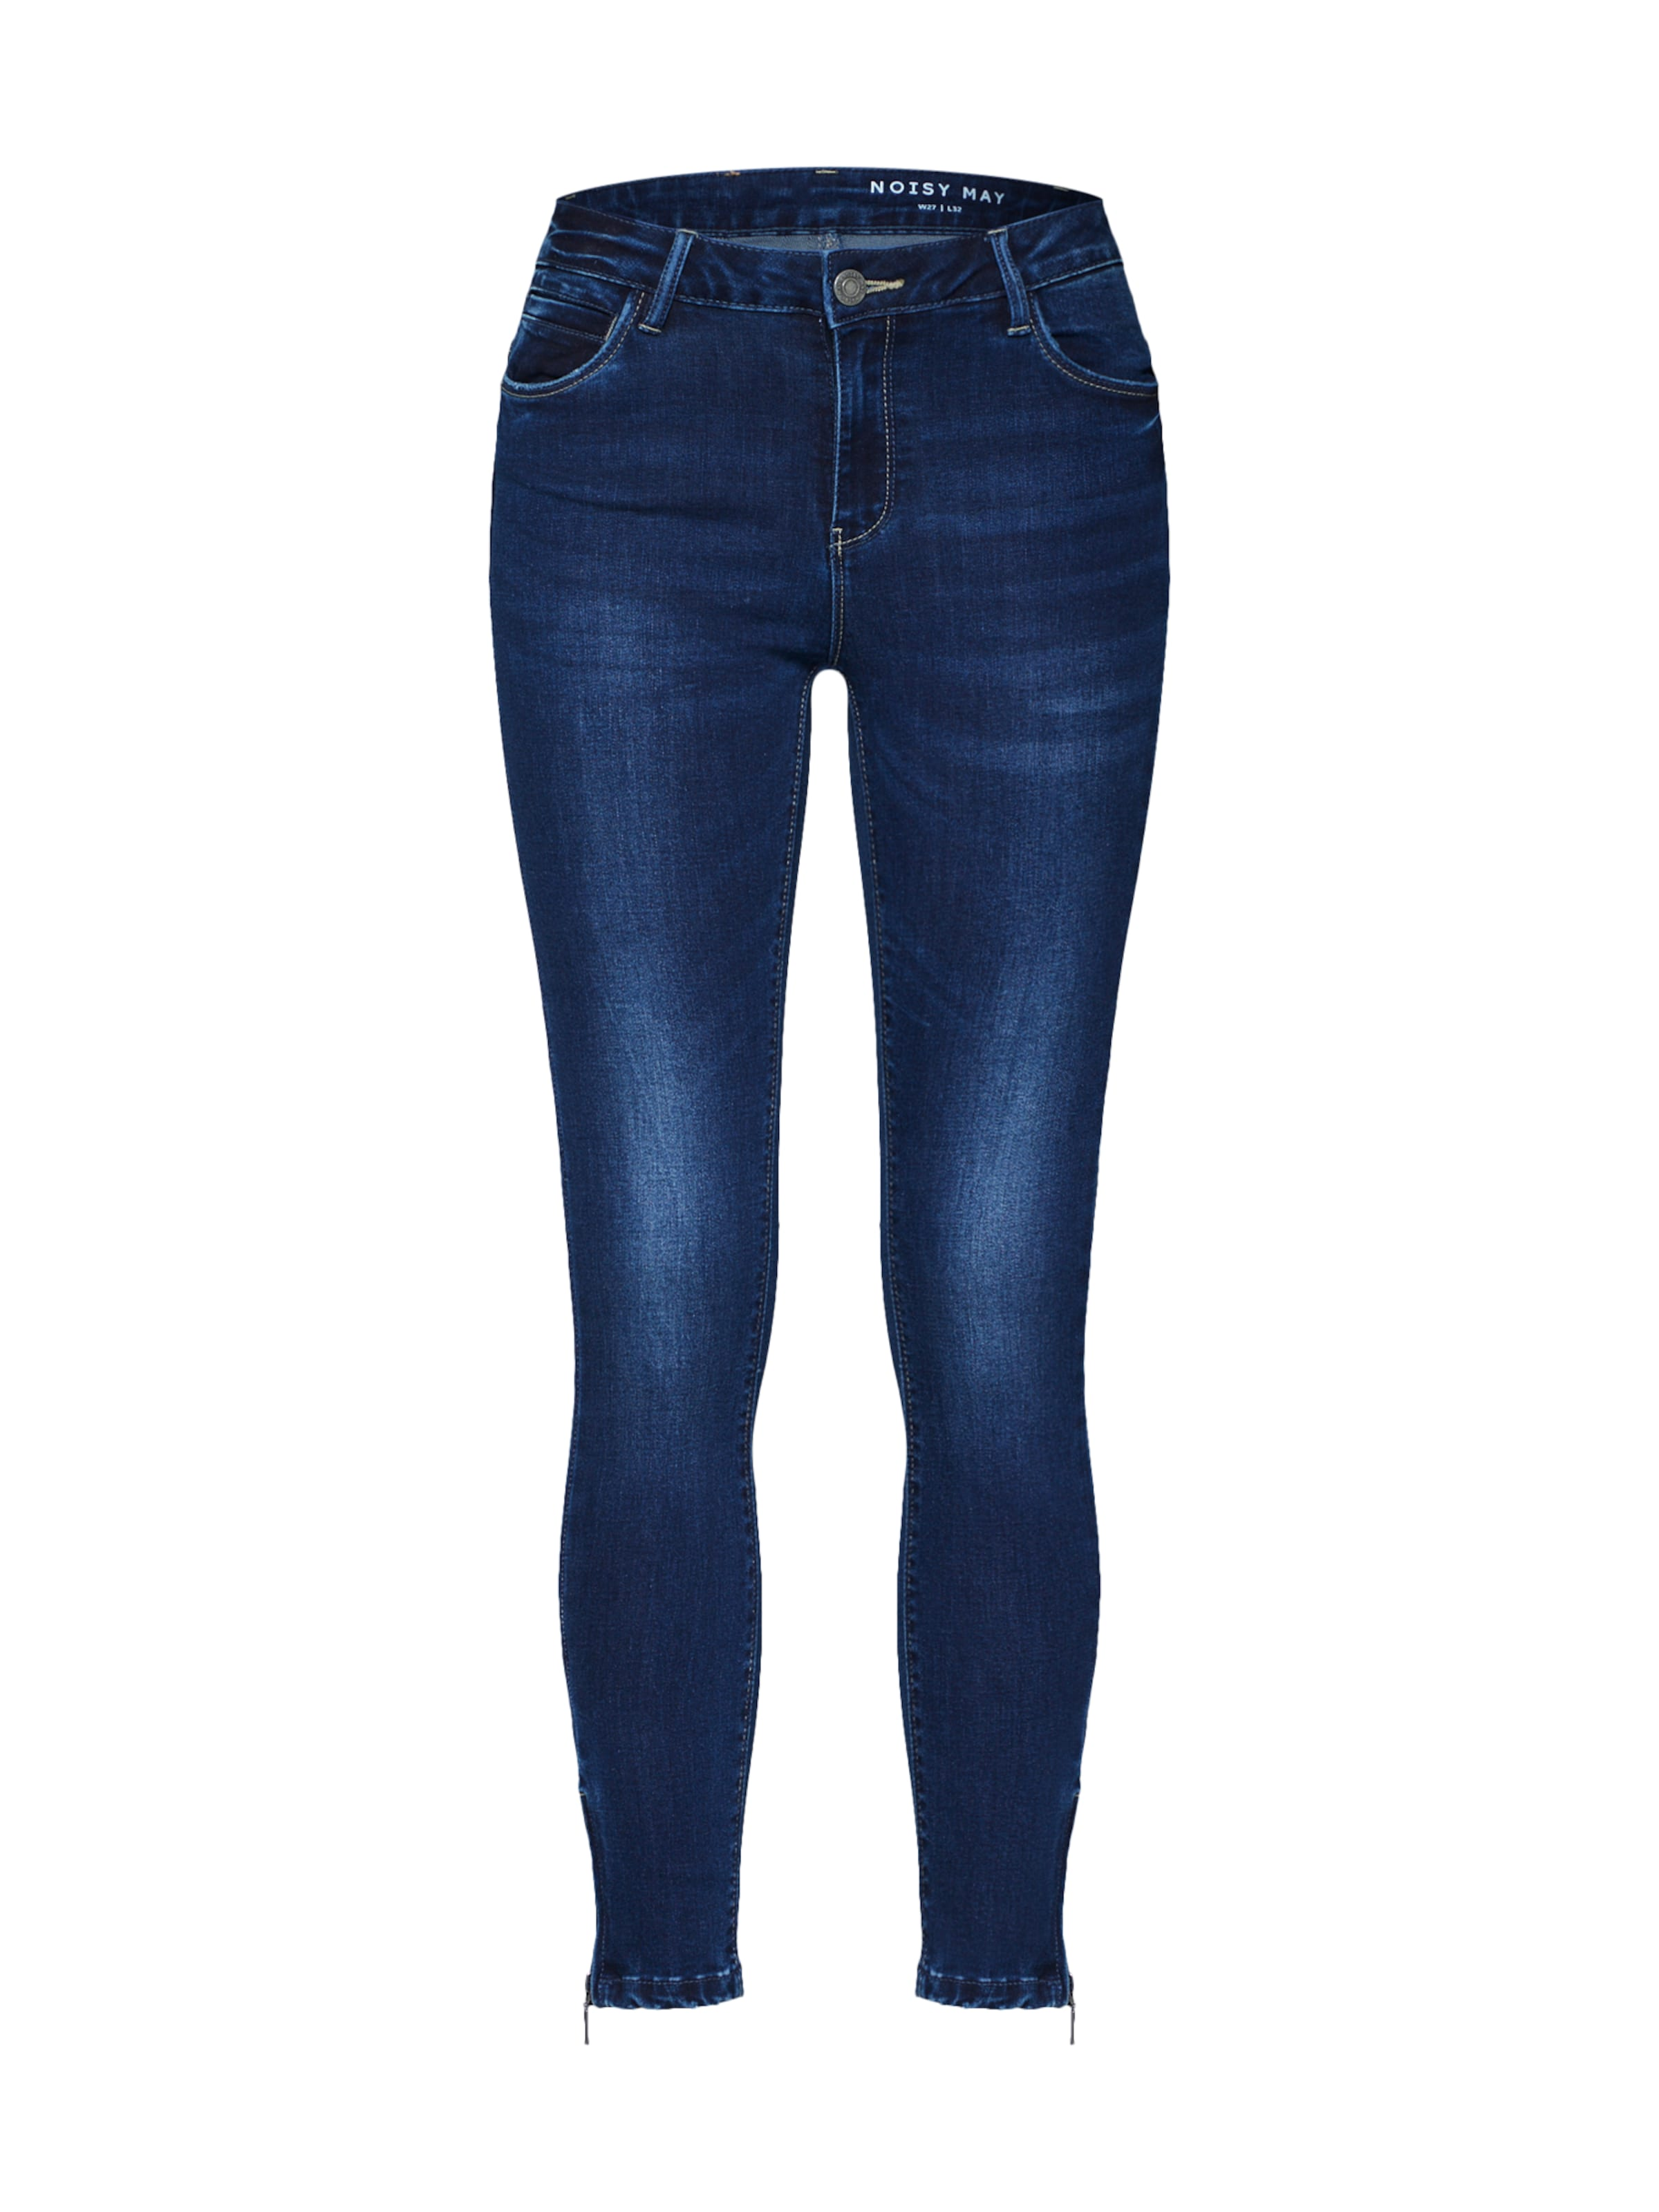 Jeans Blue Noisy May 'nmkimmy In Nw' Denim SMpLVjqUzG